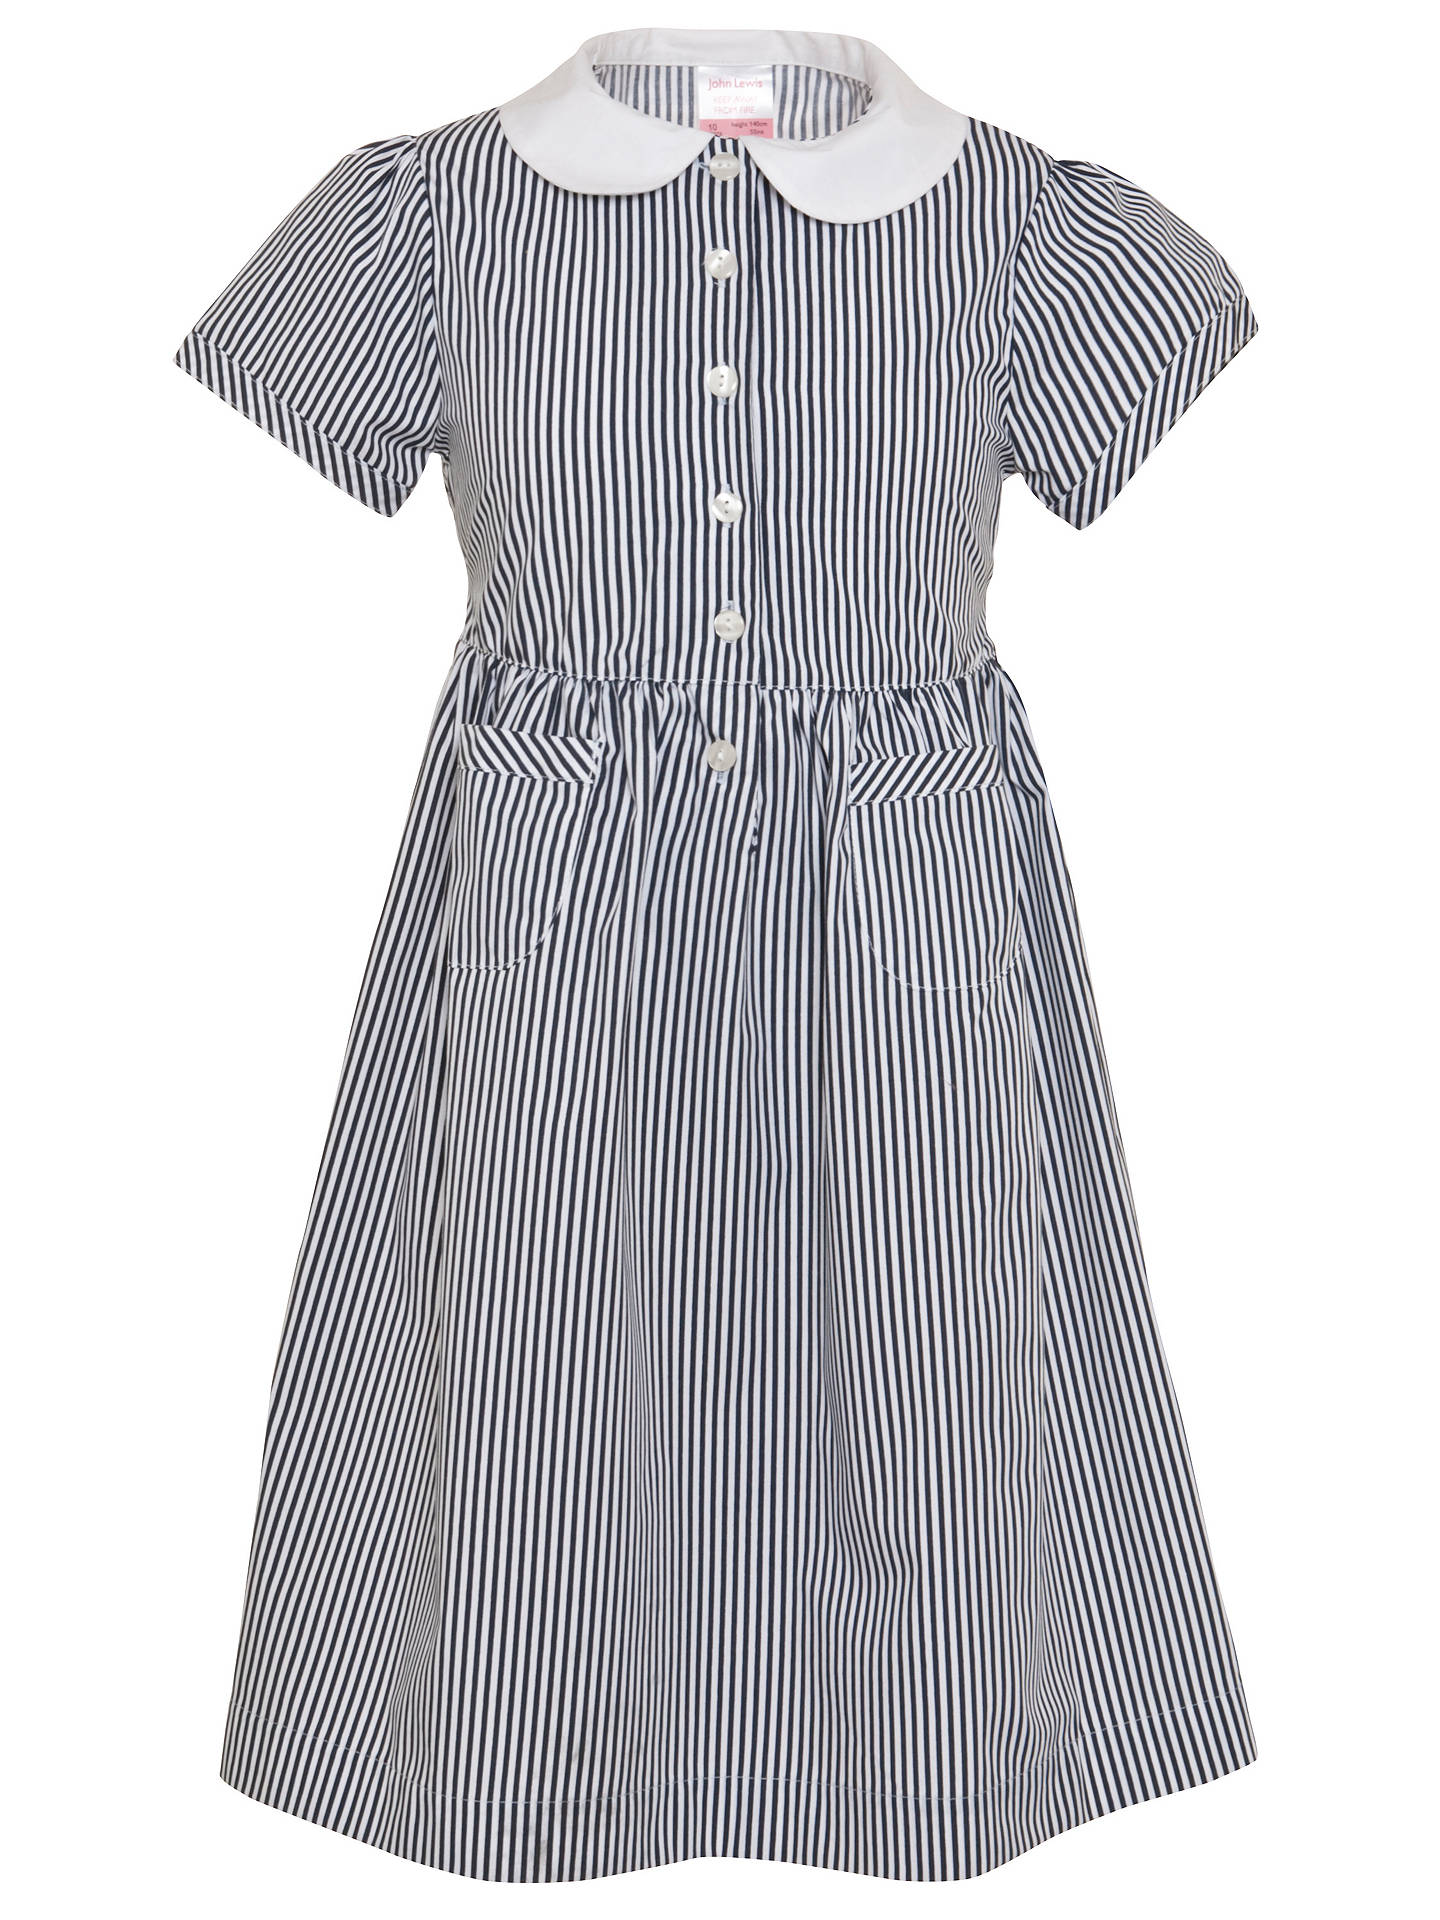 BuyJohn Lewis School Striped Summer Dress, Navy, 3 years Online at johnlewis.com